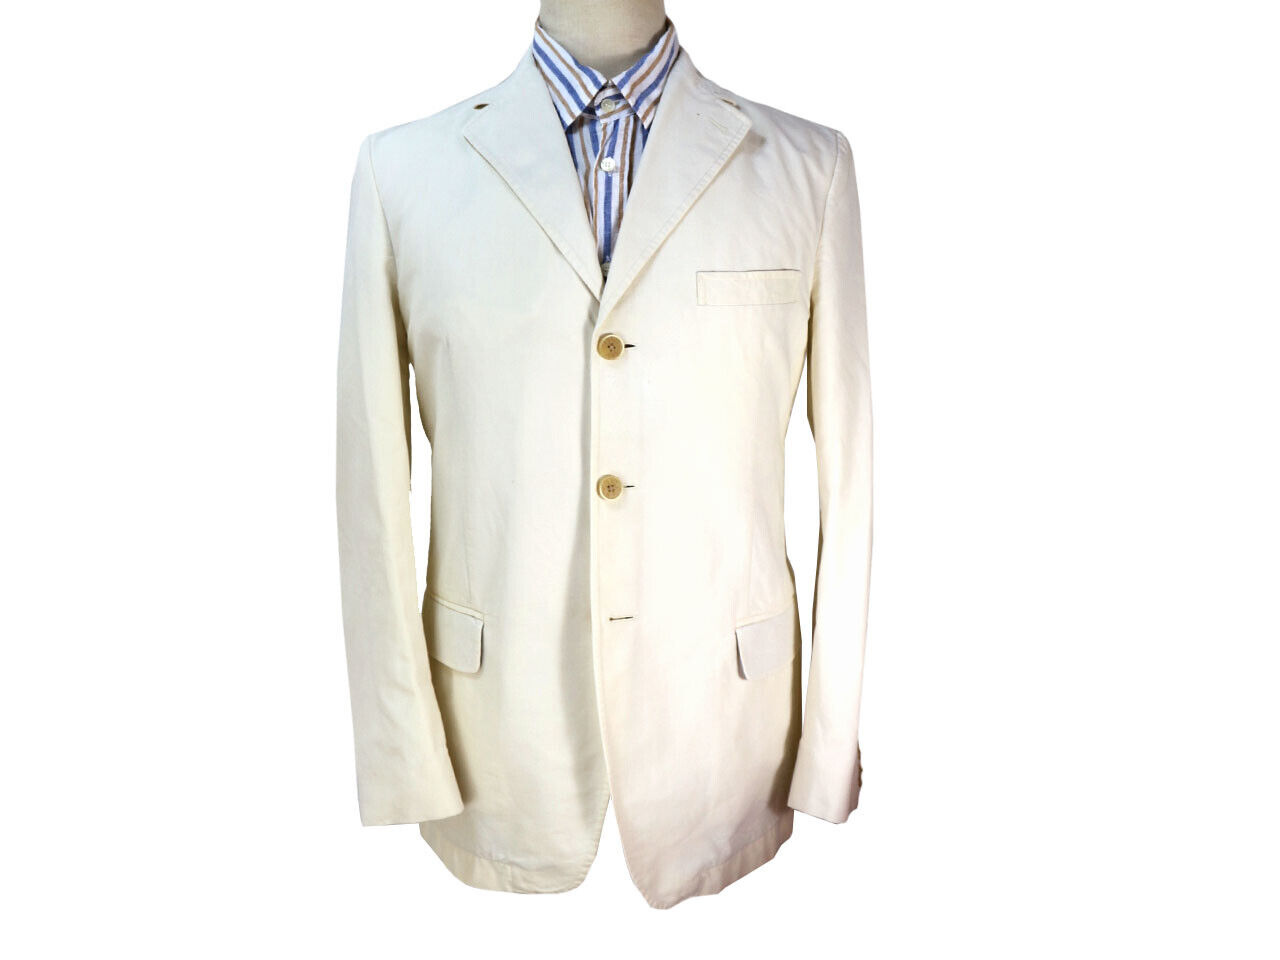 Brooksfield, 3 button blazer, white cotton size M